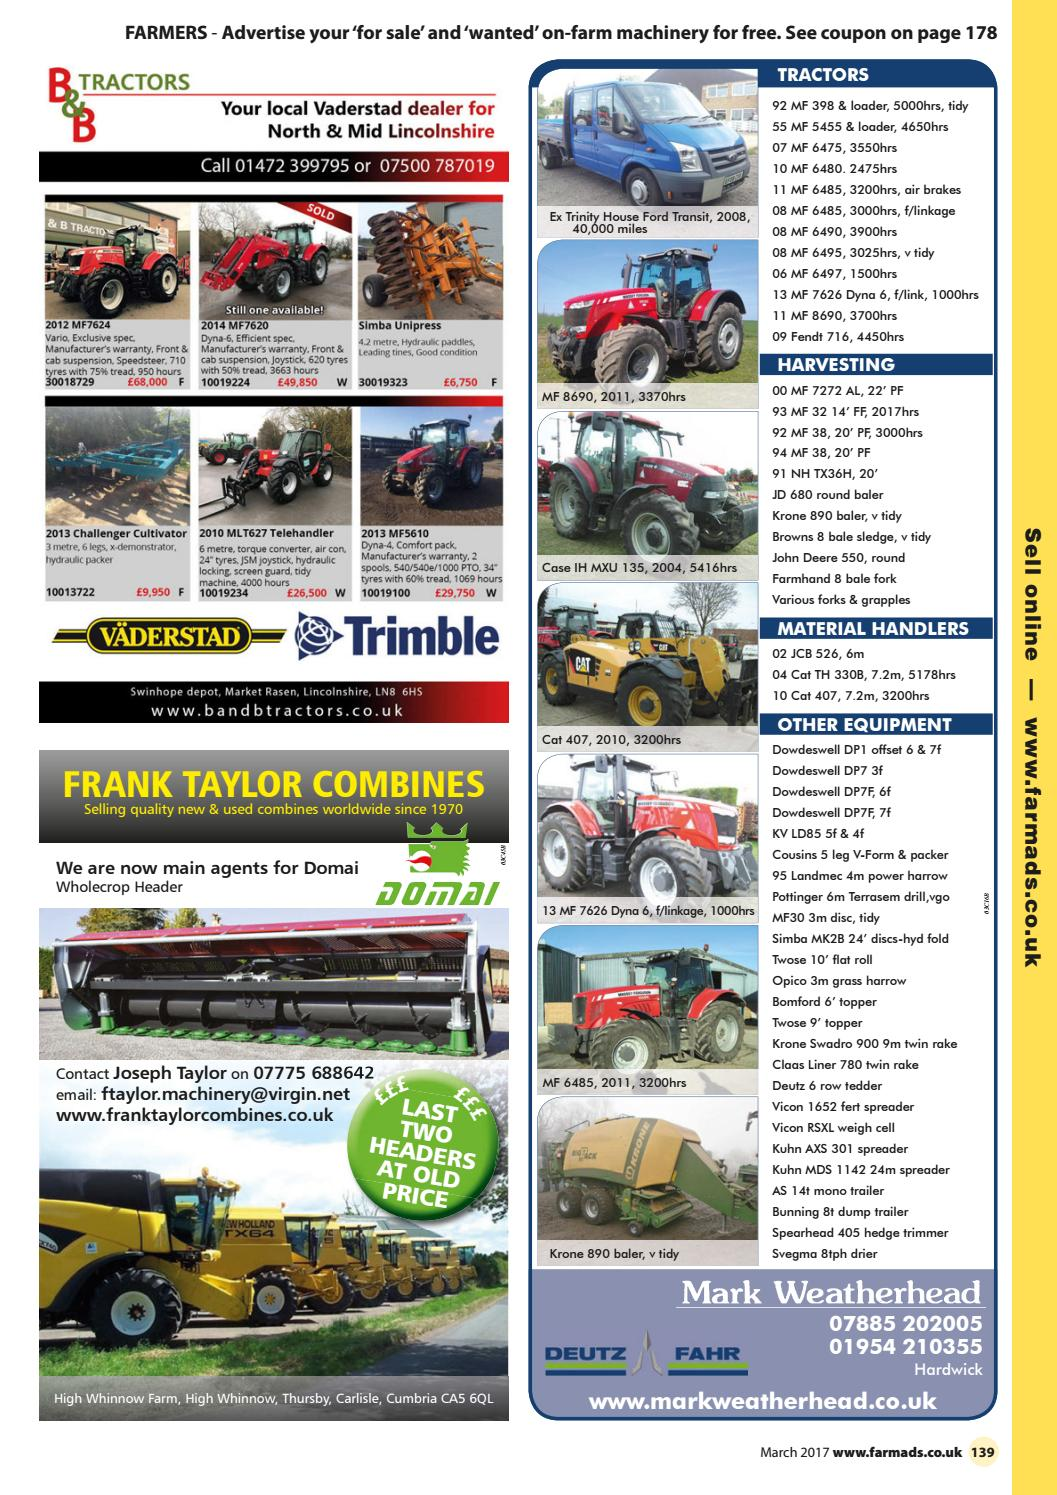 Farmers Guide March 2017 by Farmers Guide - issuu